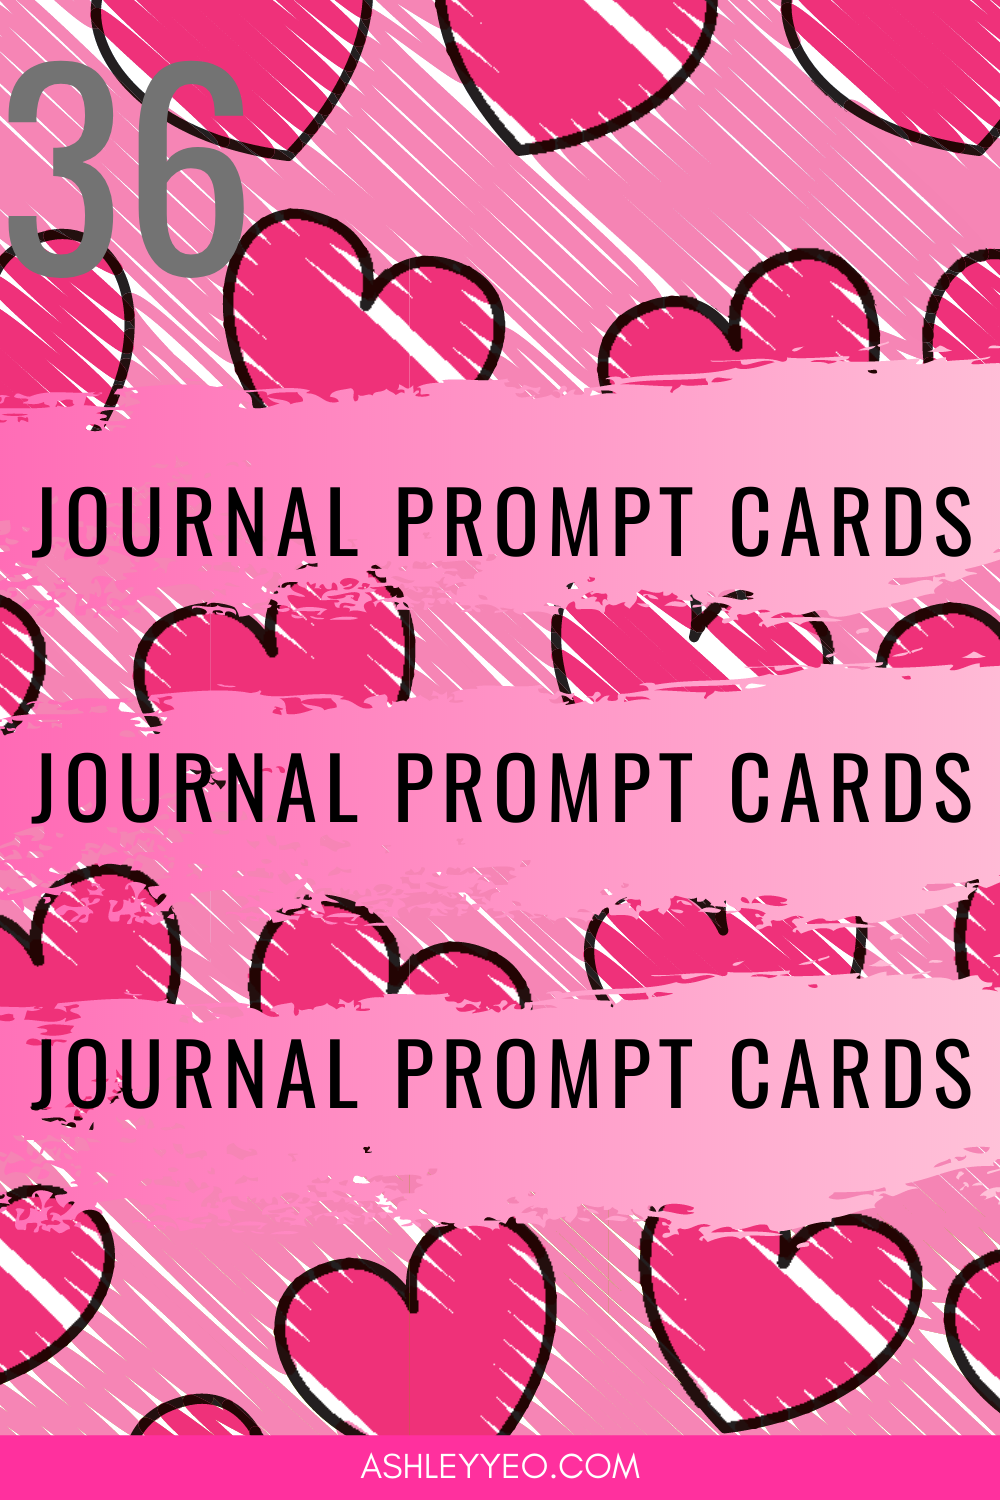 36 Love and Relationship Journal Prompt Cards Set 2